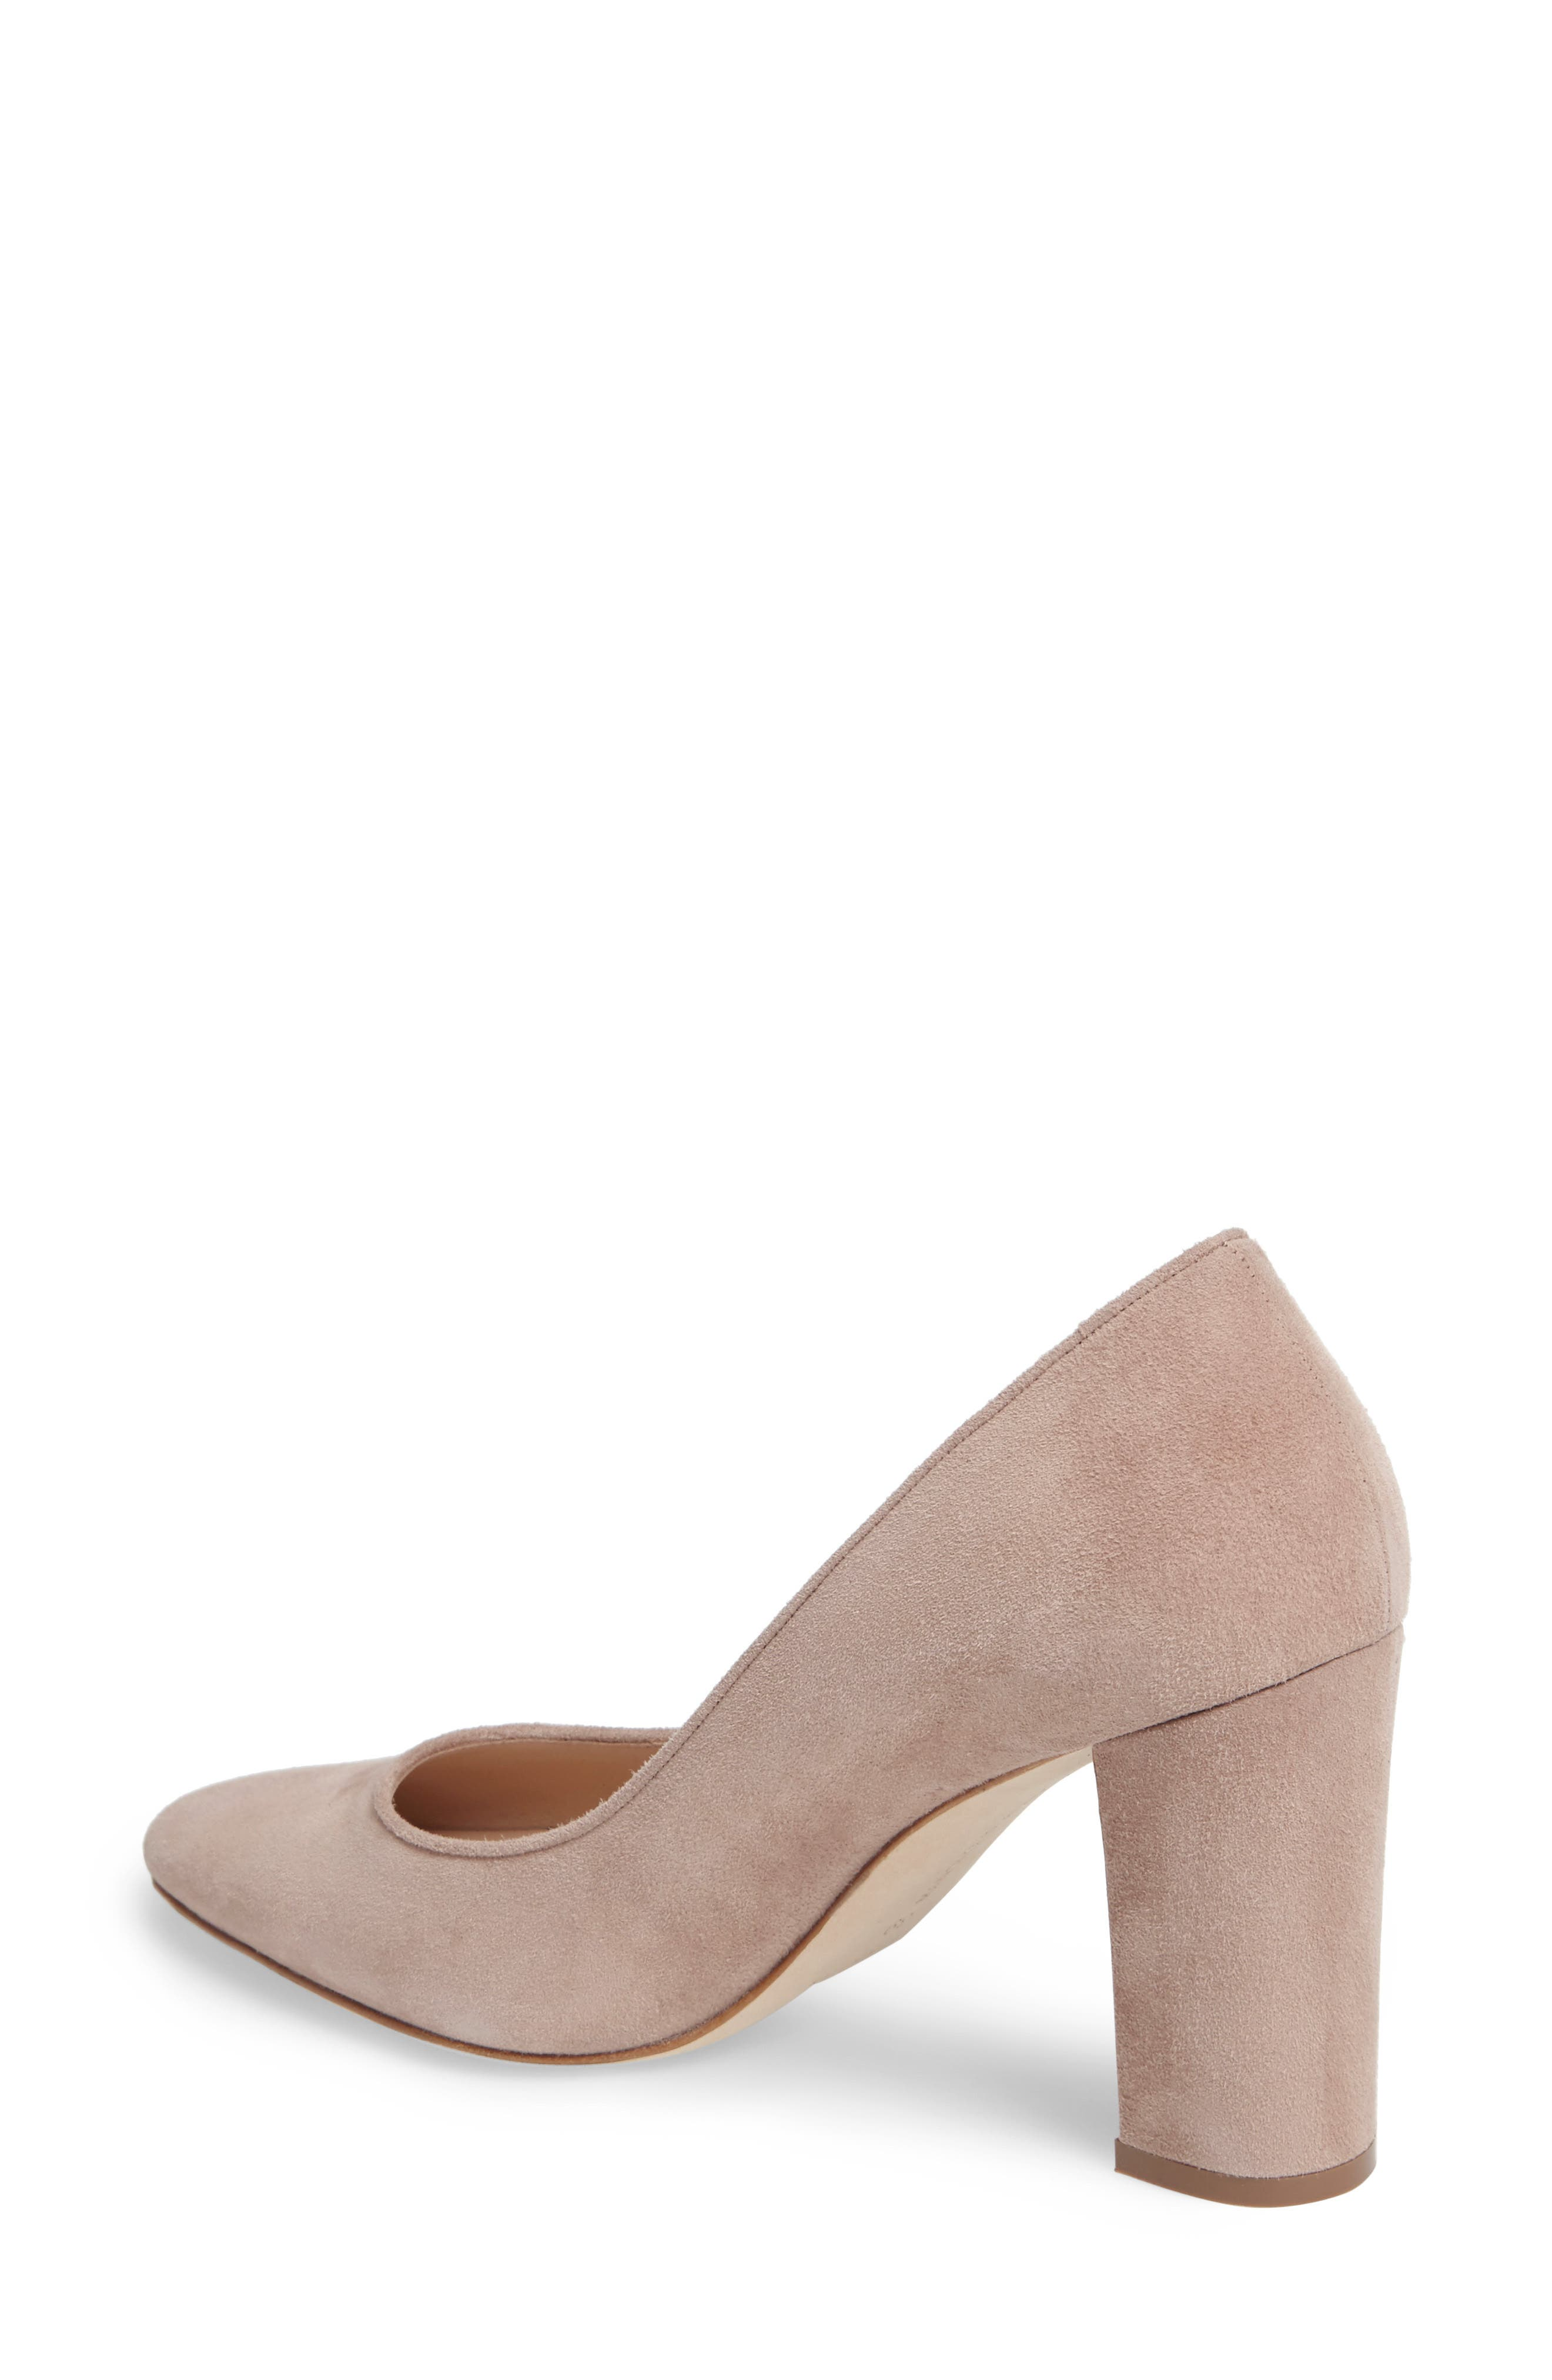 Alternate Image 2  - Manolo Blahnik Tucciototo Block Heel Pump (Women)